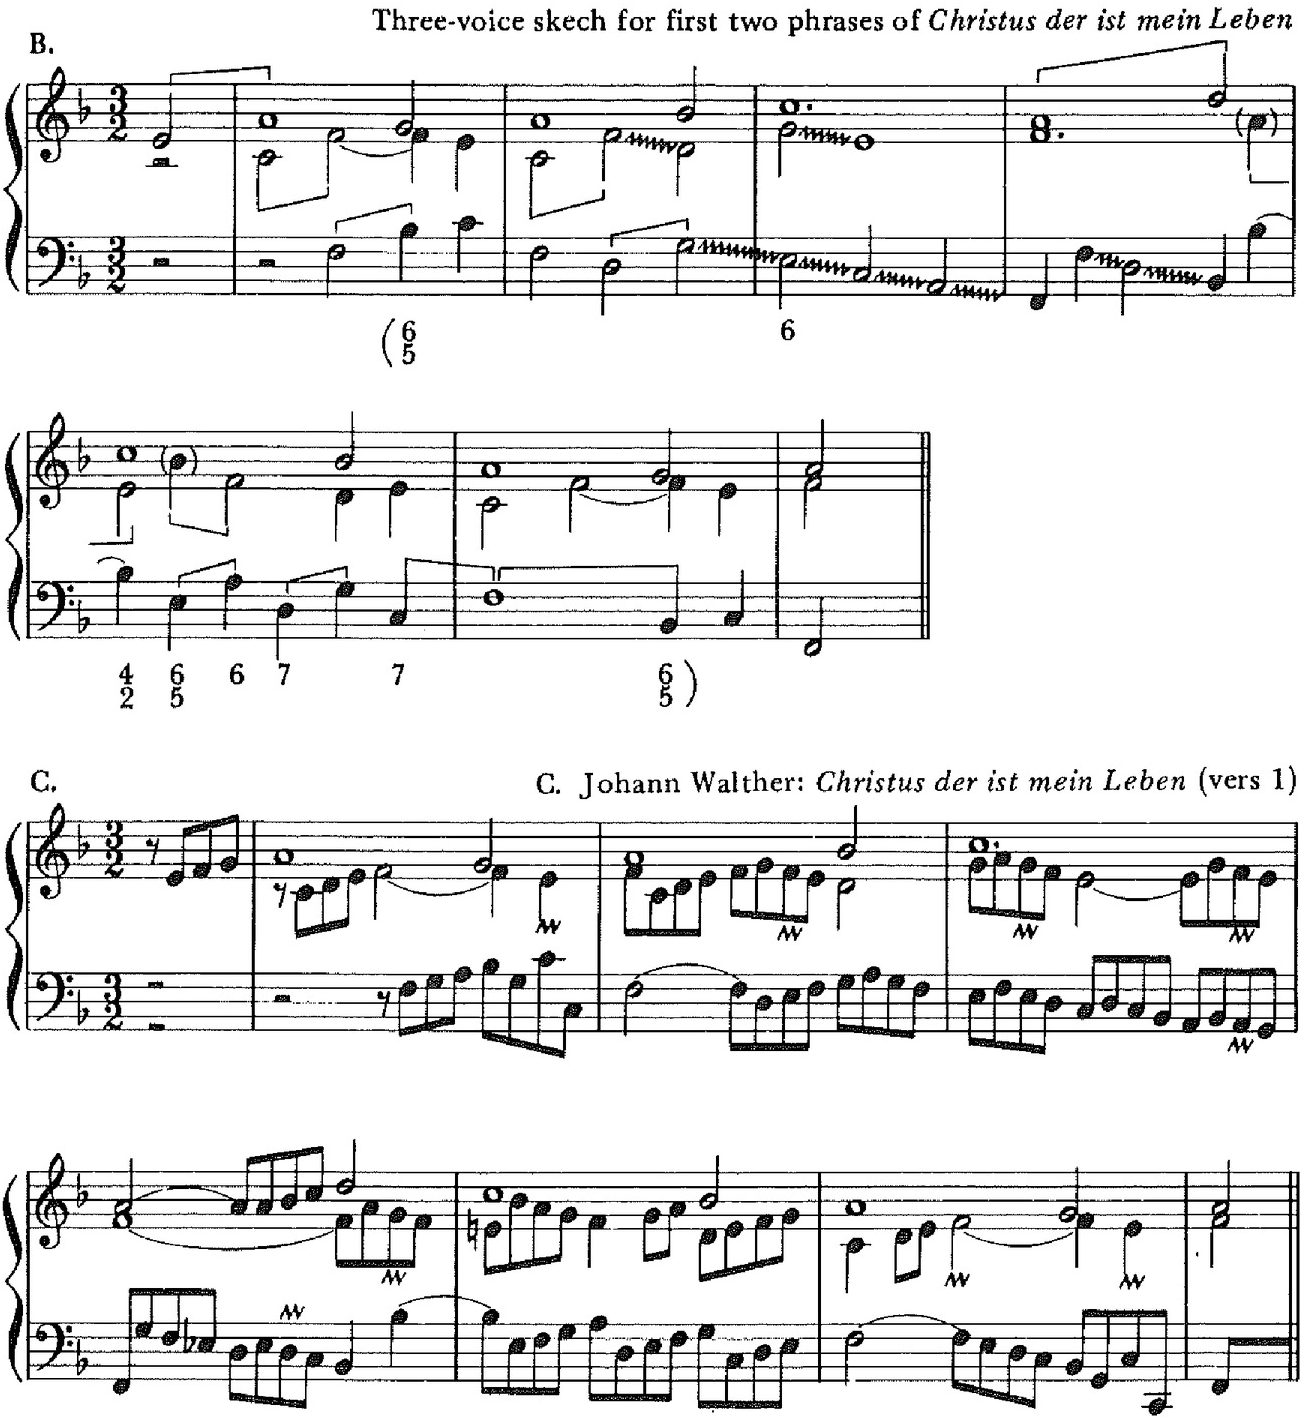 Motive, phrase, melody, and theme (Chapter 2